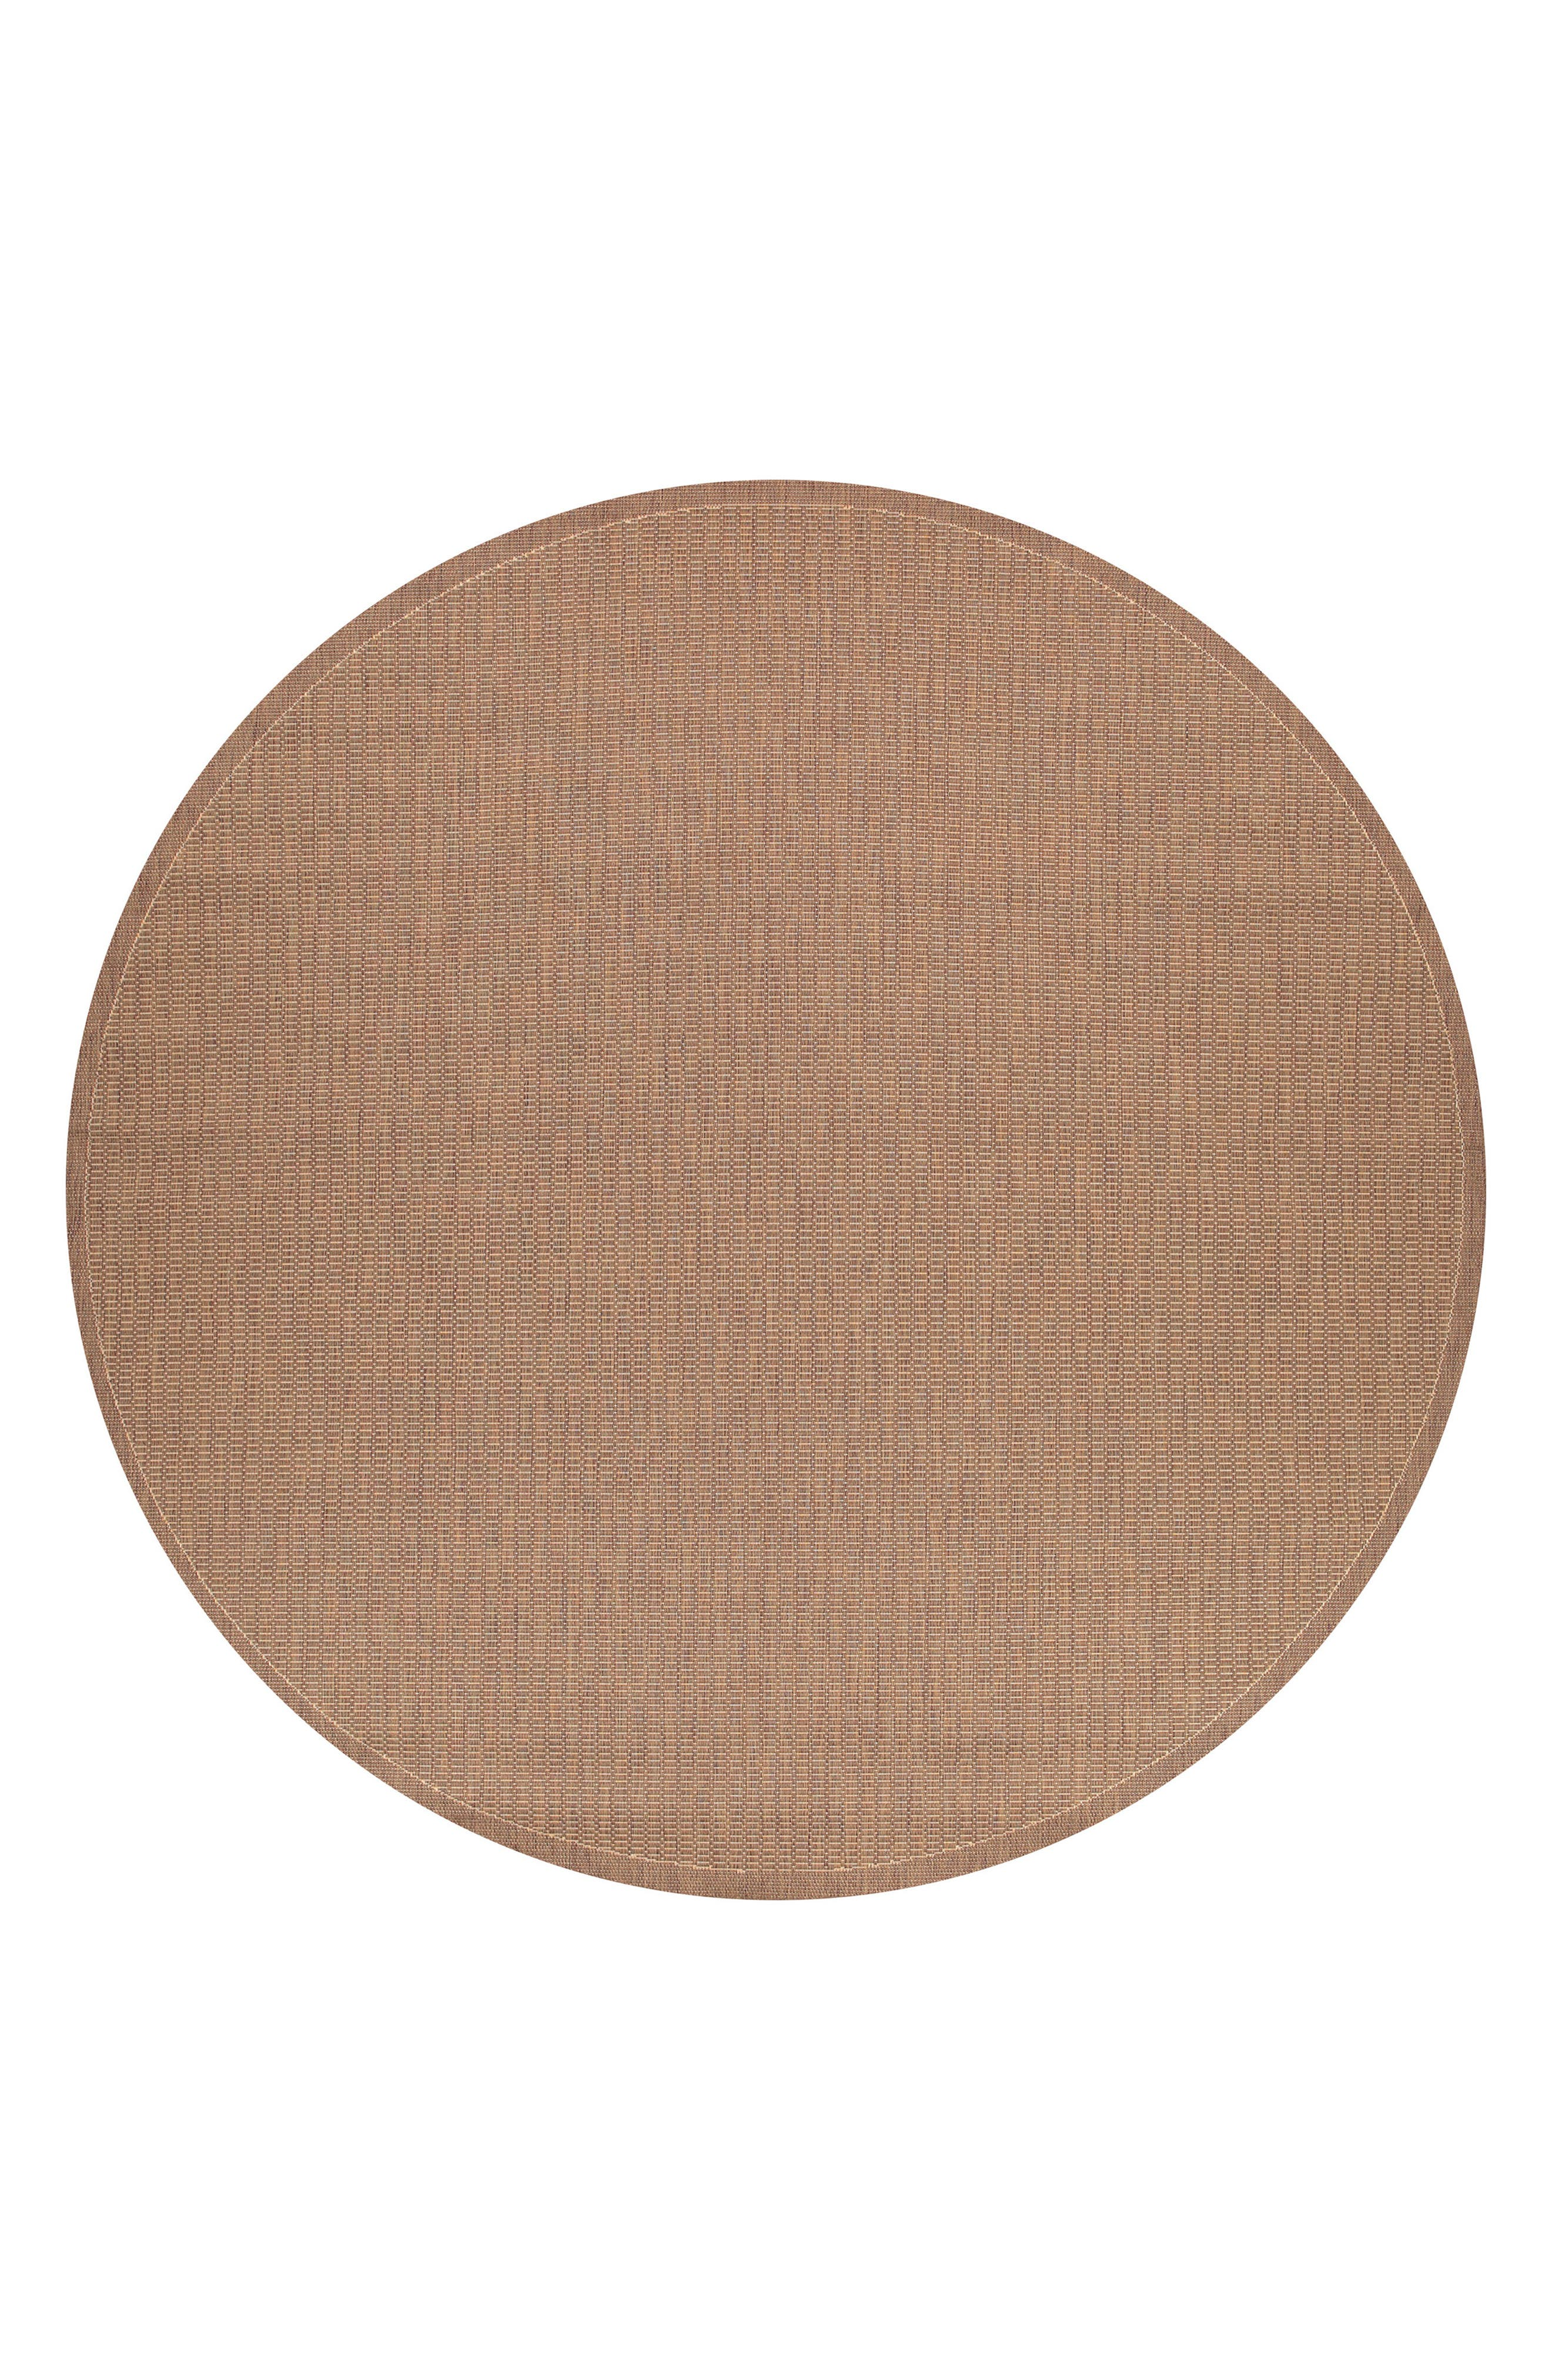 Saddle Stitch Indoor/Outdoor Rug,                         Main,                         color, Cocoa/ Natural